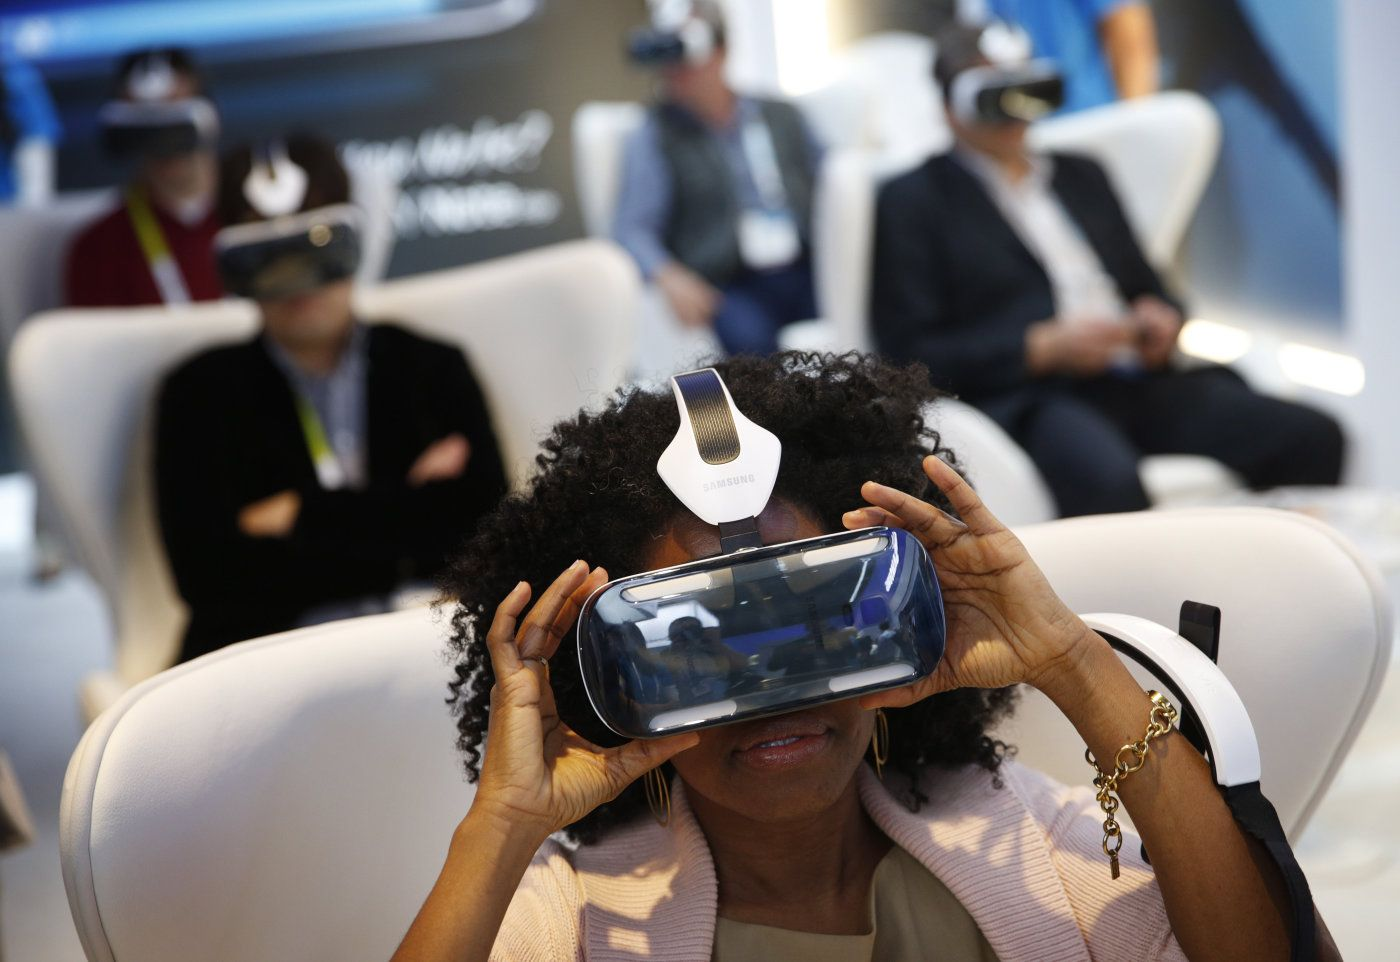 VR storytelling from brands like Sports Illustrated and